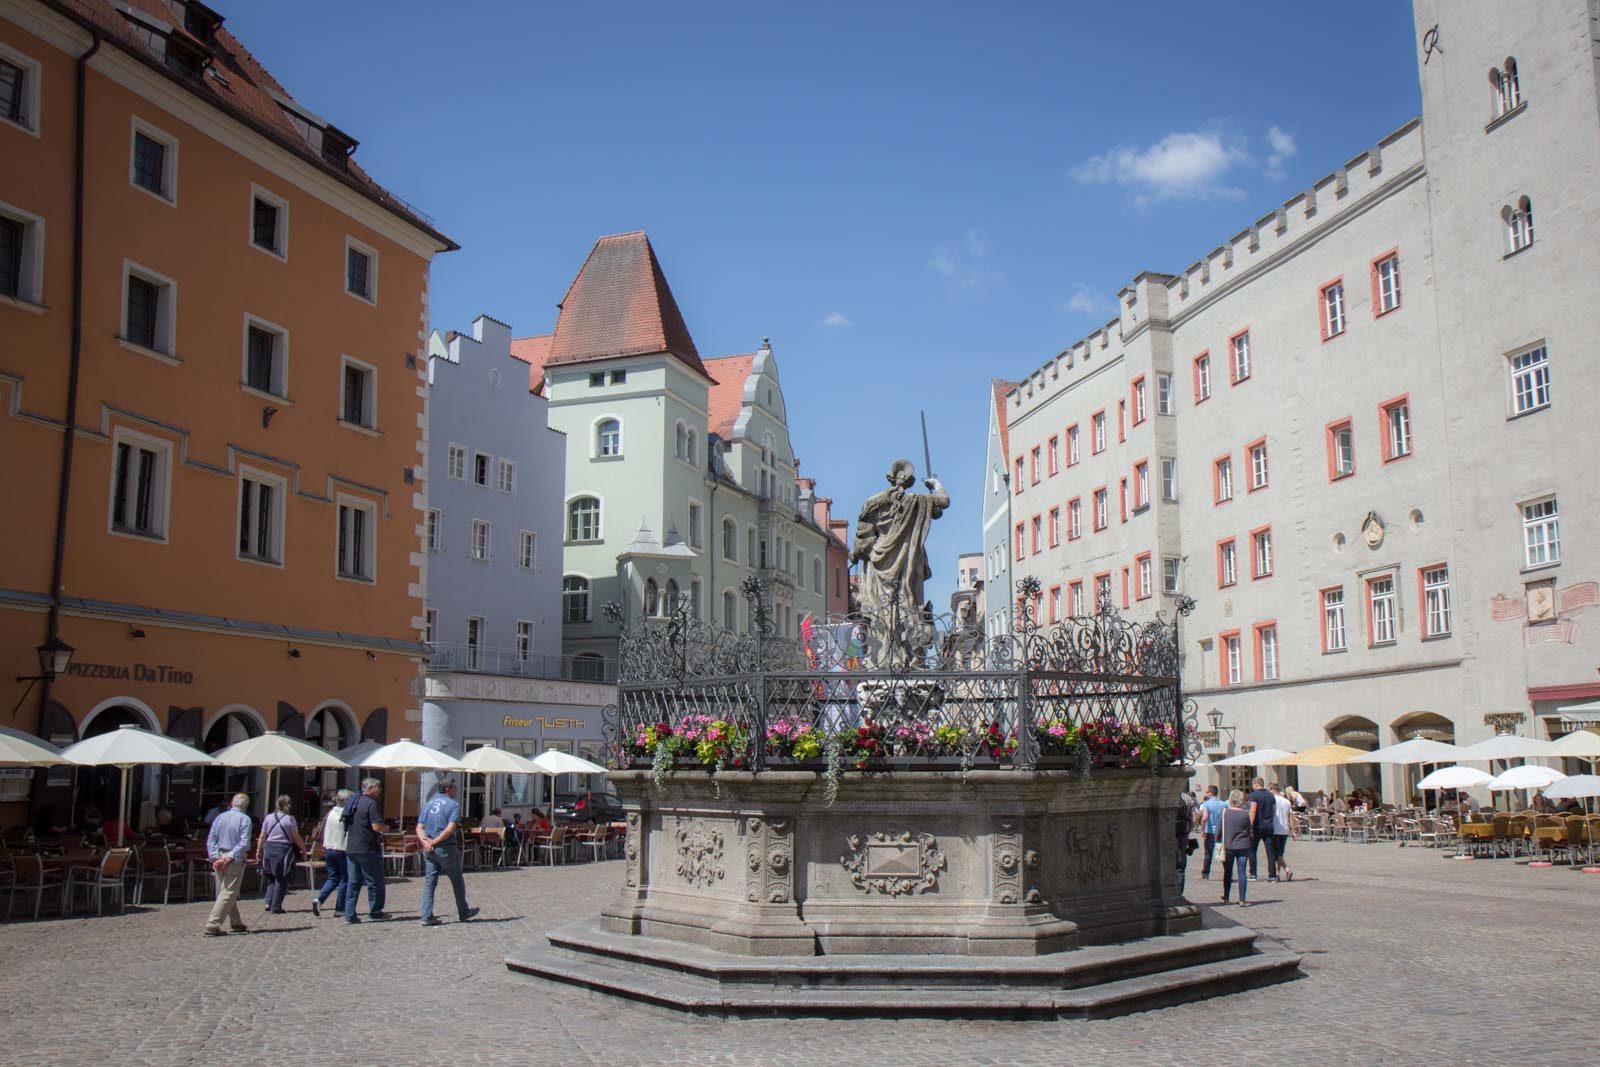 Old Town Regensburg, Germany, World Heritage Site